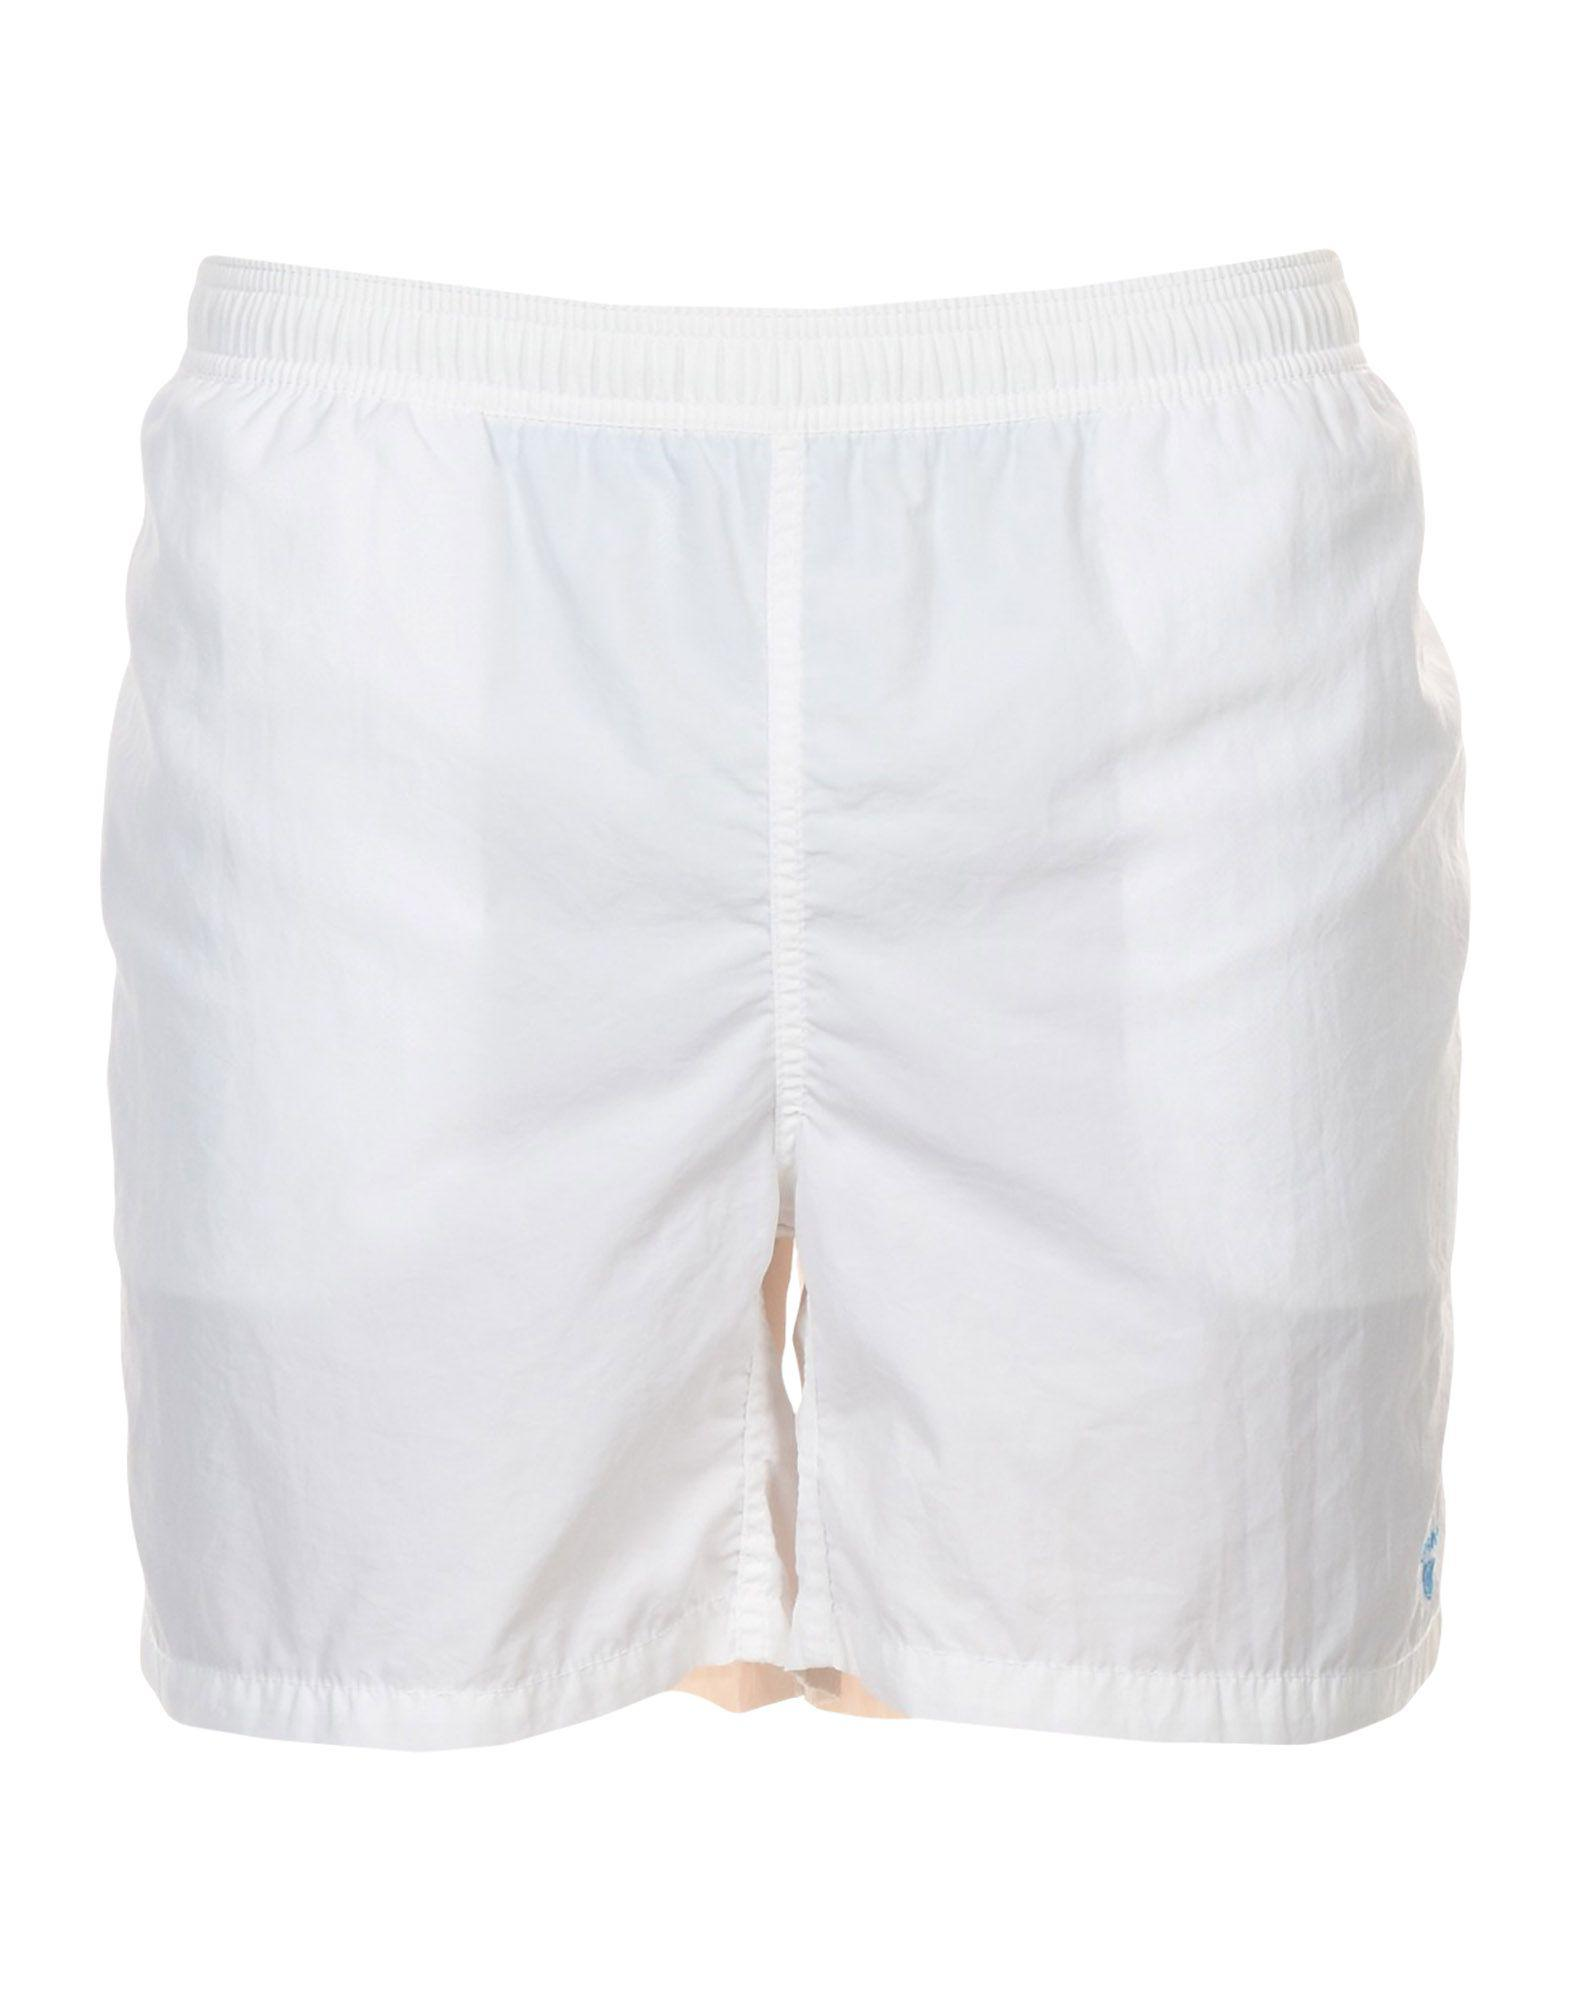 4e5a38ed1082a GANT Swim Trunks in White for Men - Lyst